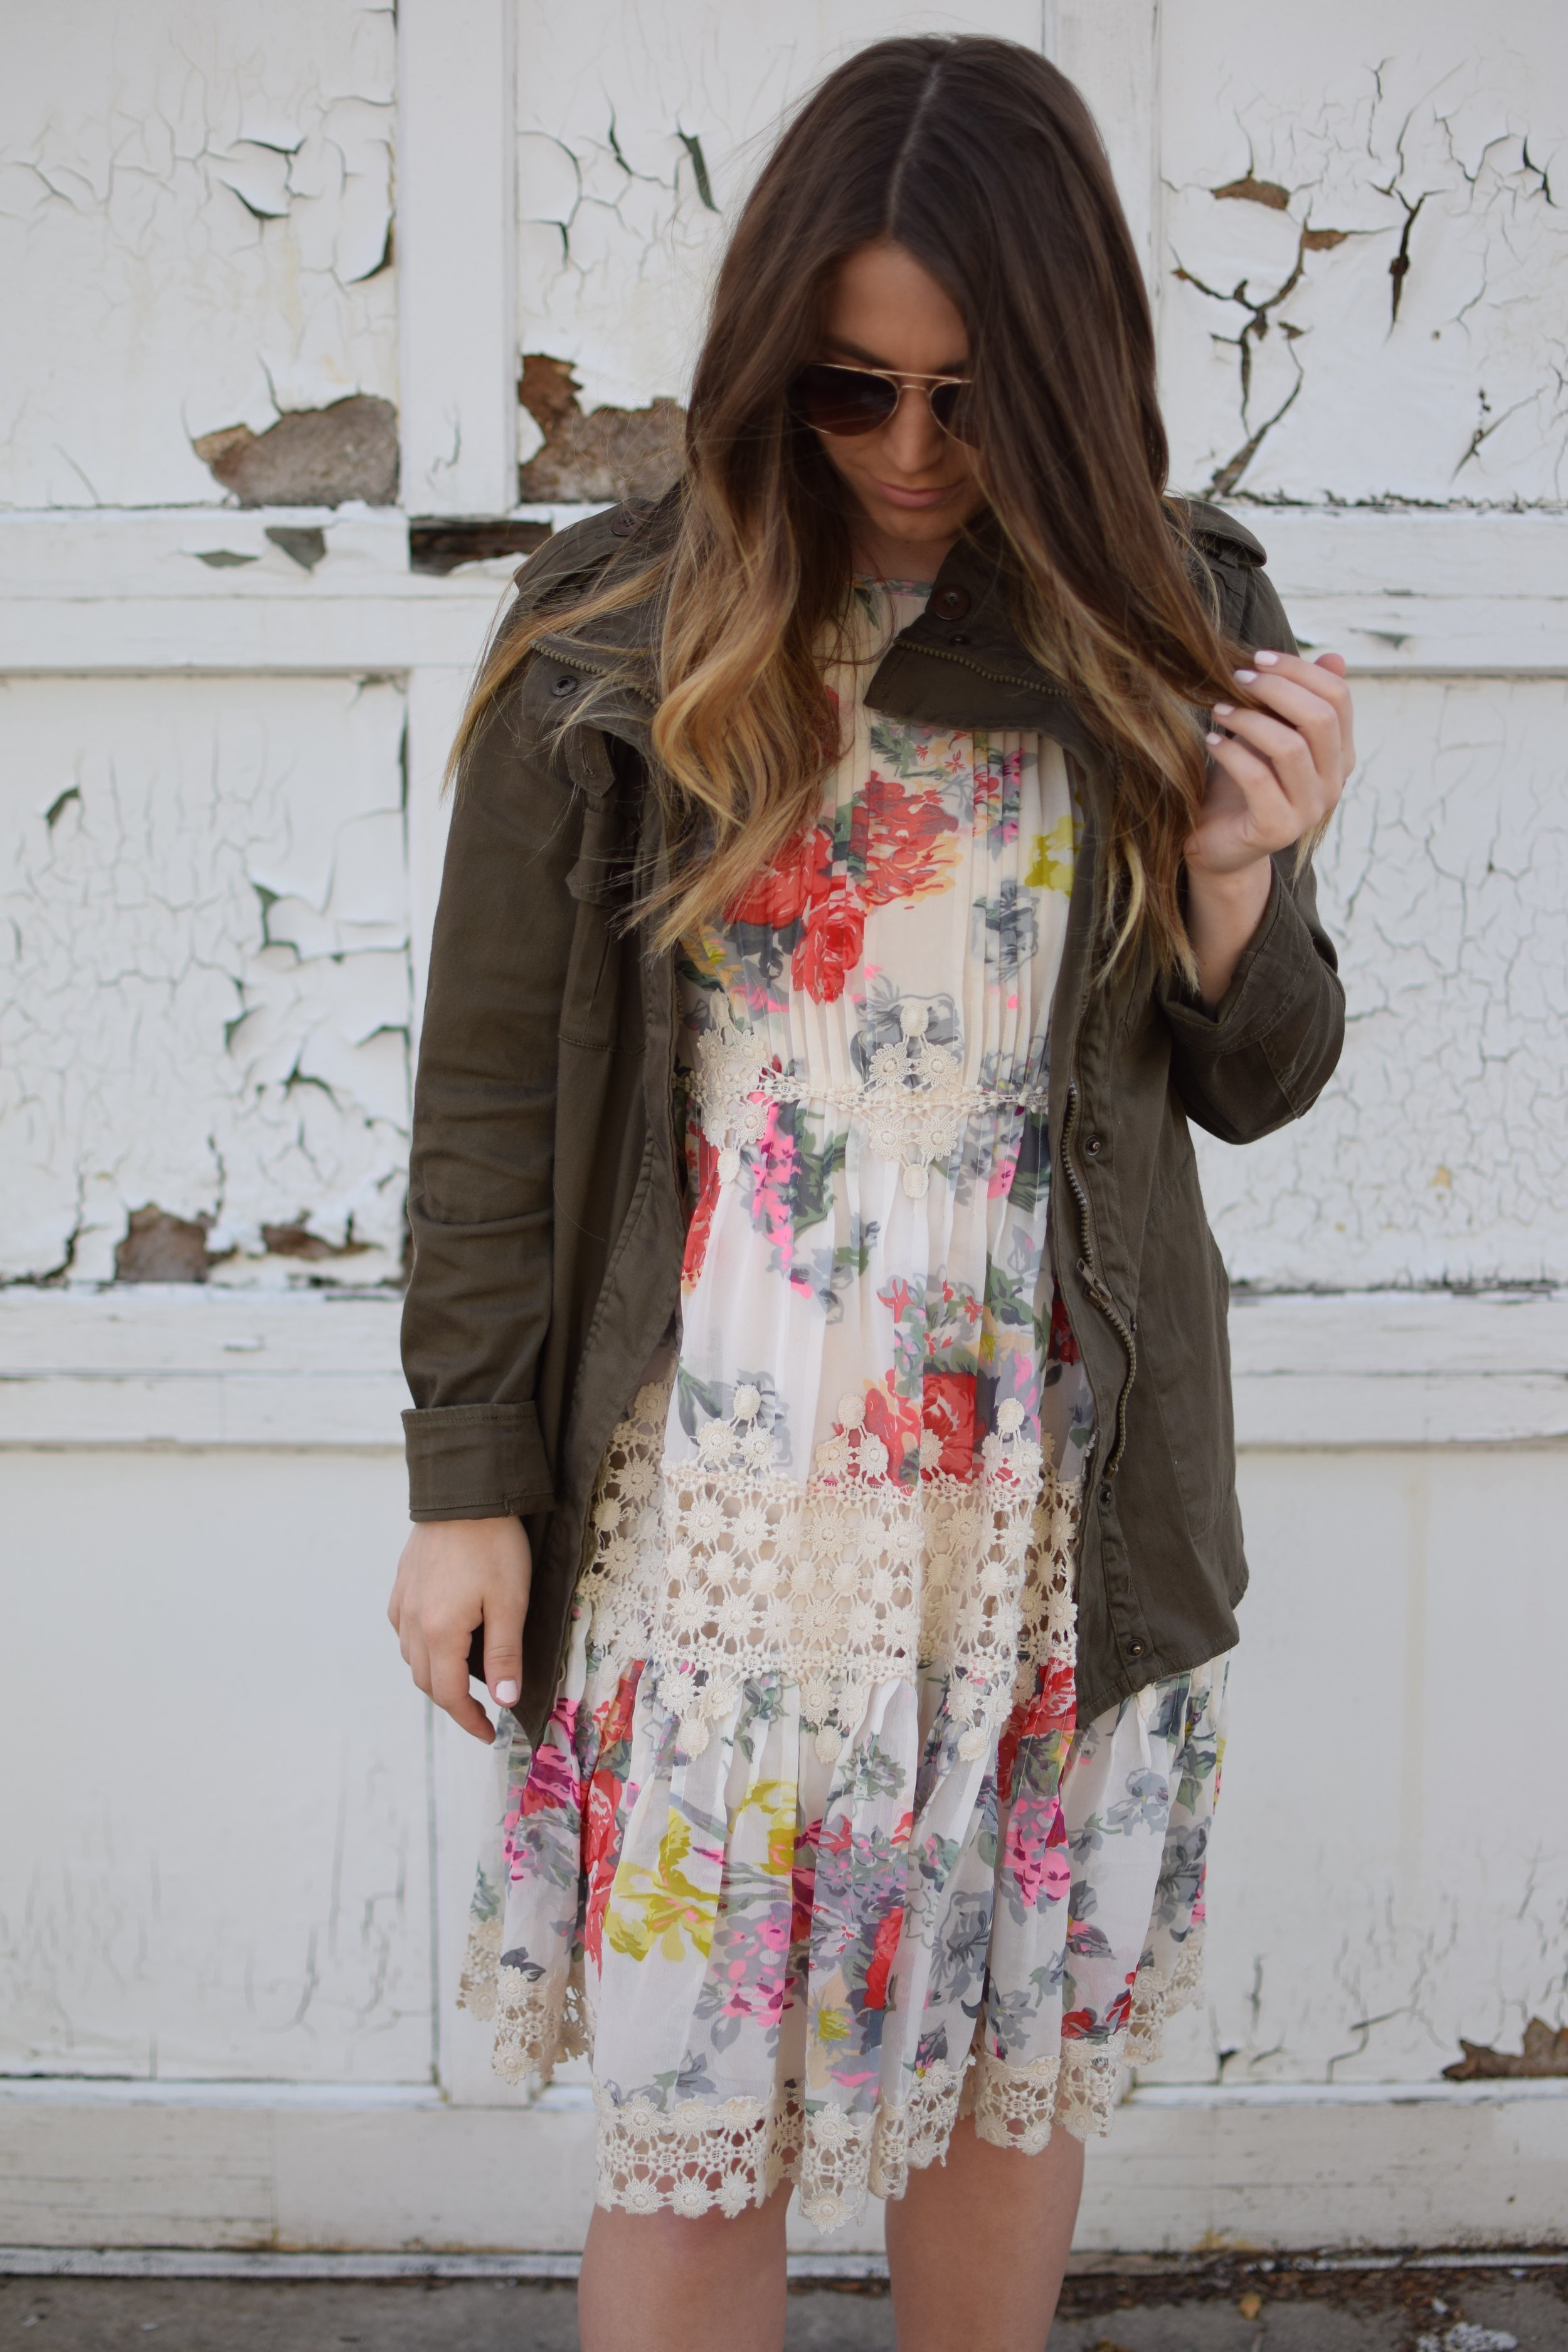 anthropology floral and lace dress / spring & summer outfit idea / utility jacket